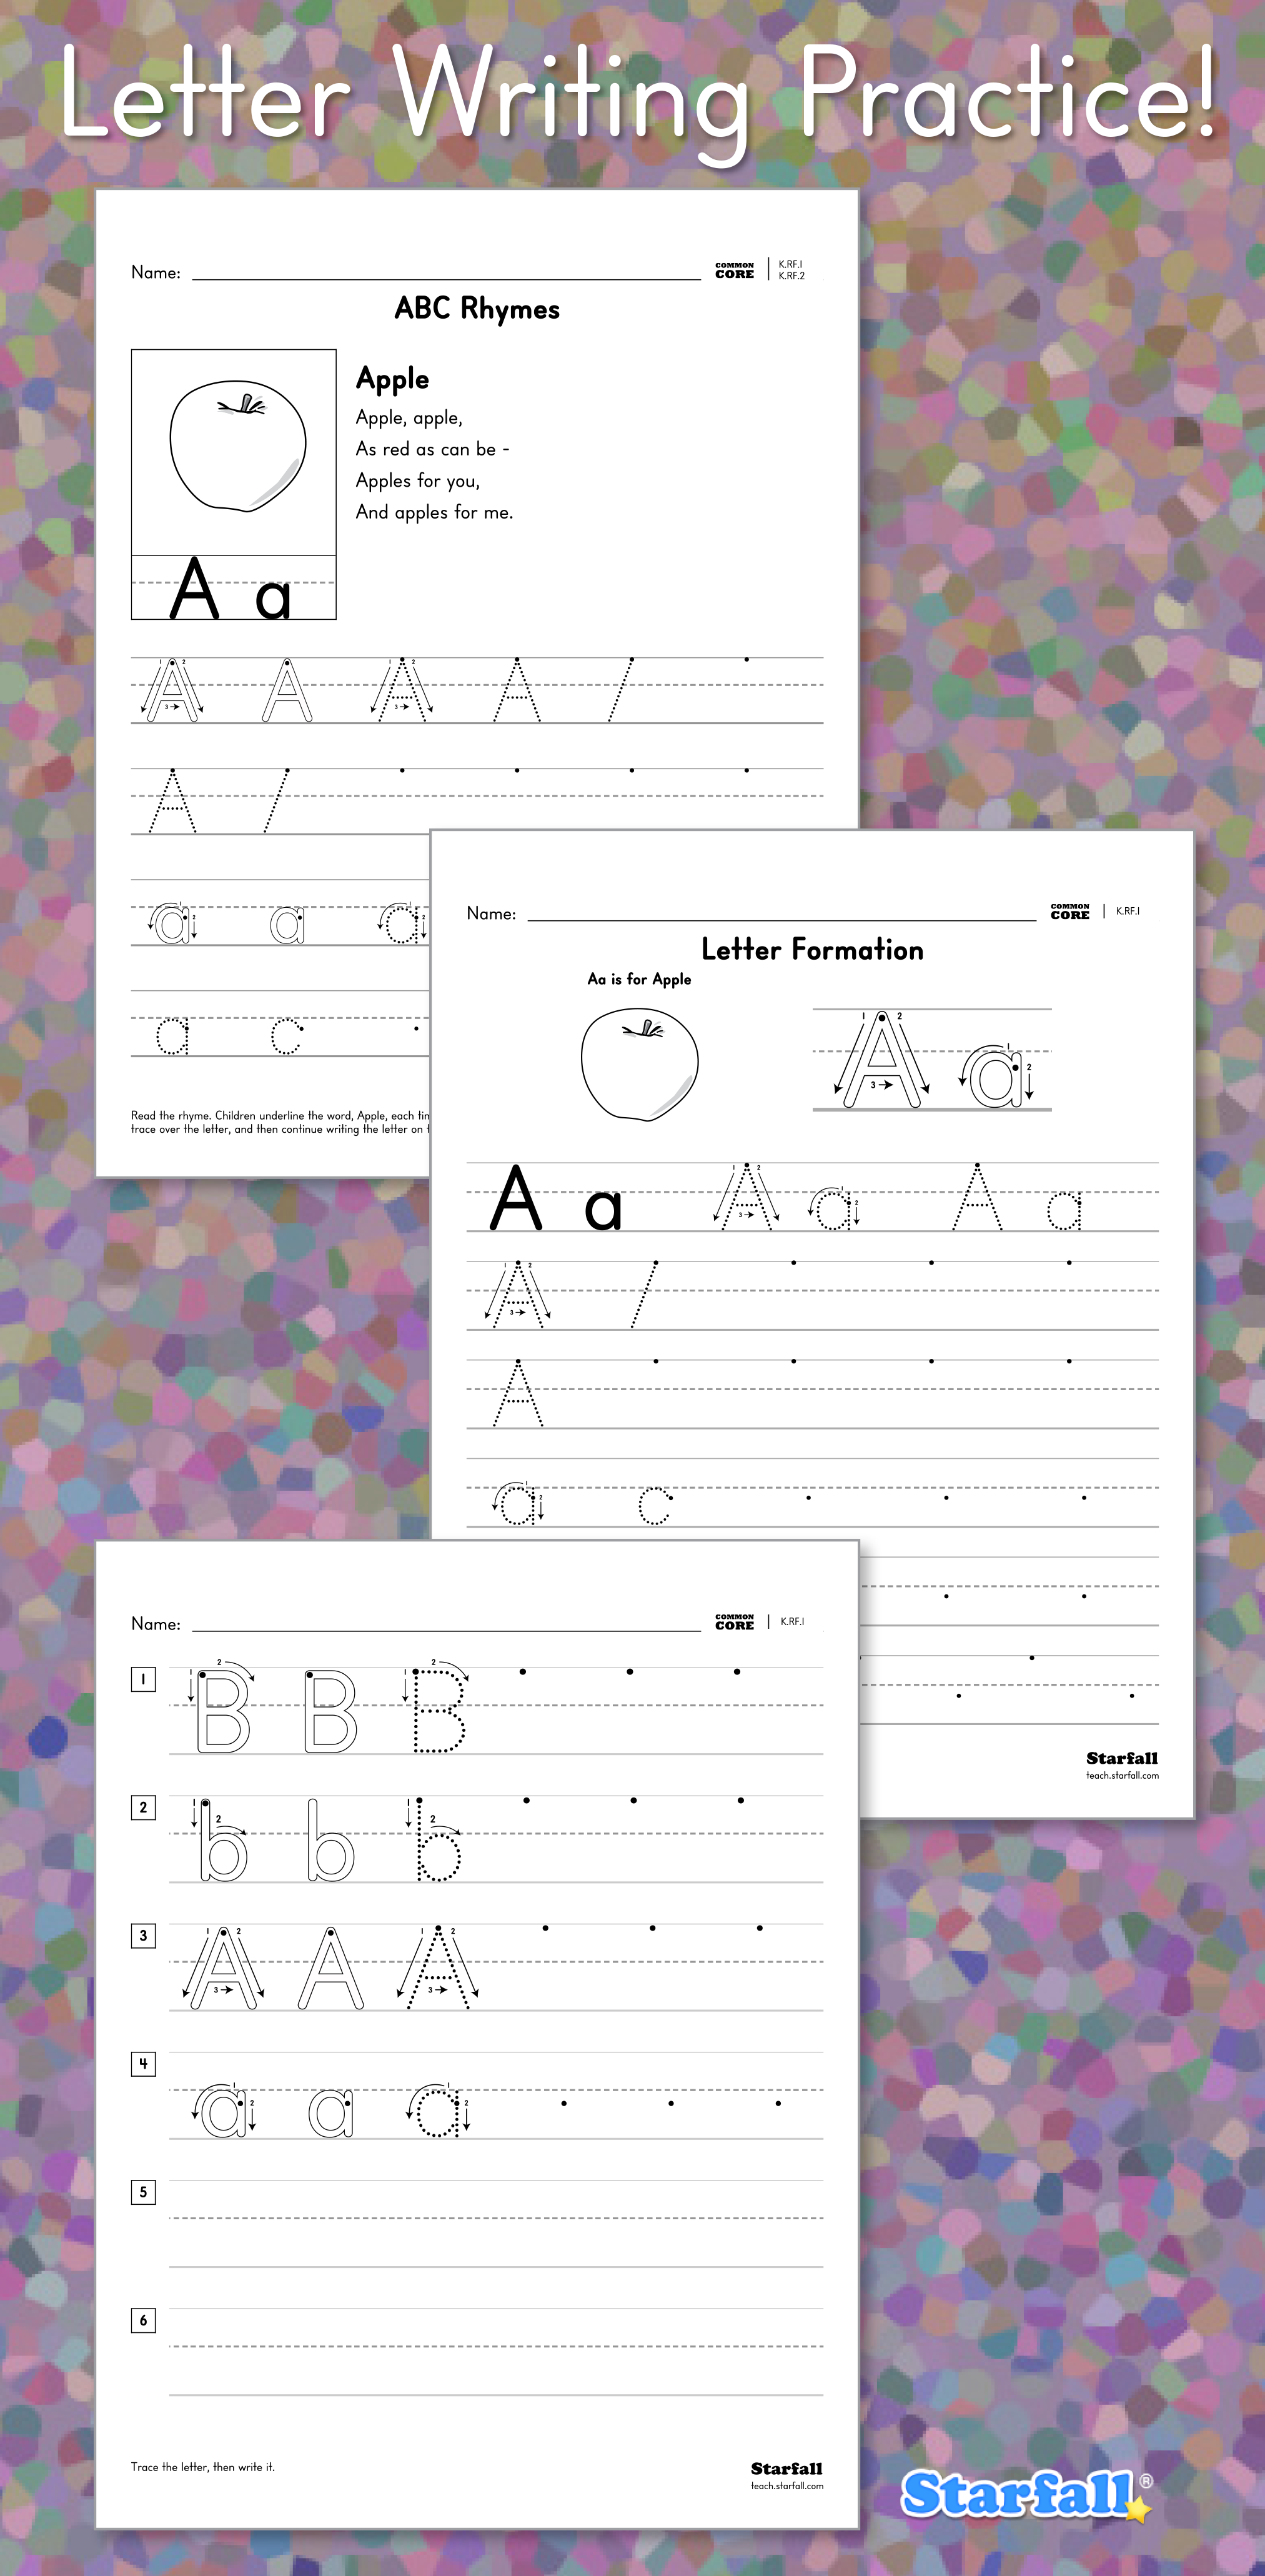 Free Customizable Worksheets From Starfall So Children